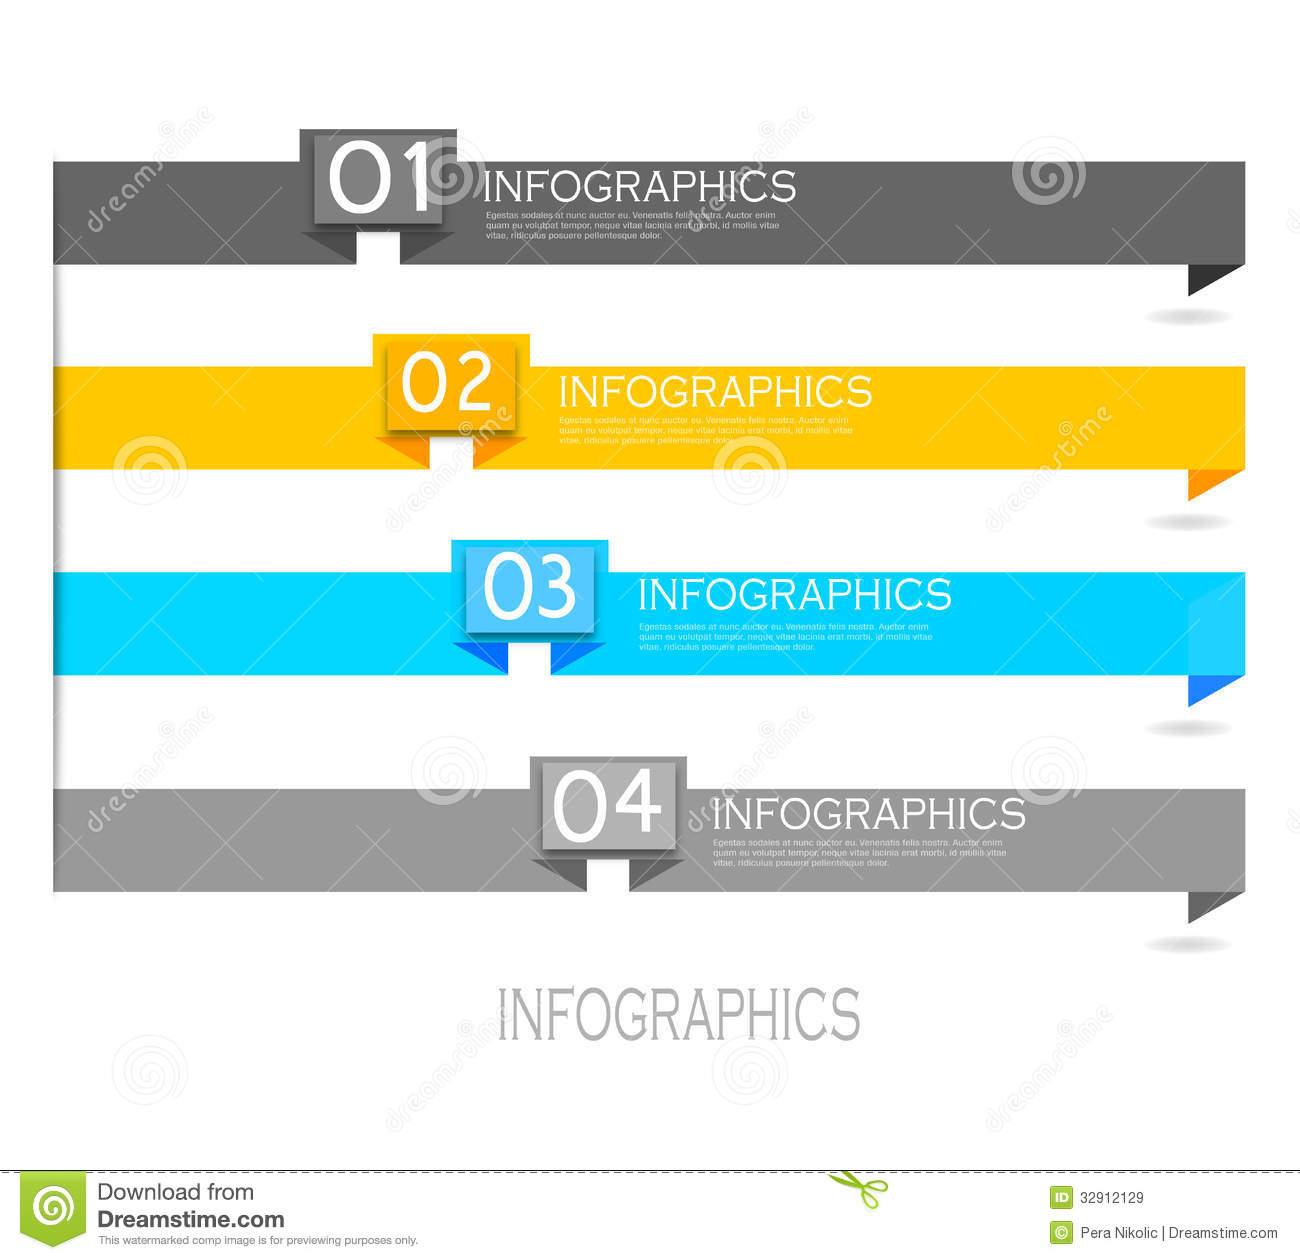 Royalty free stock photo download infographic banner design elements